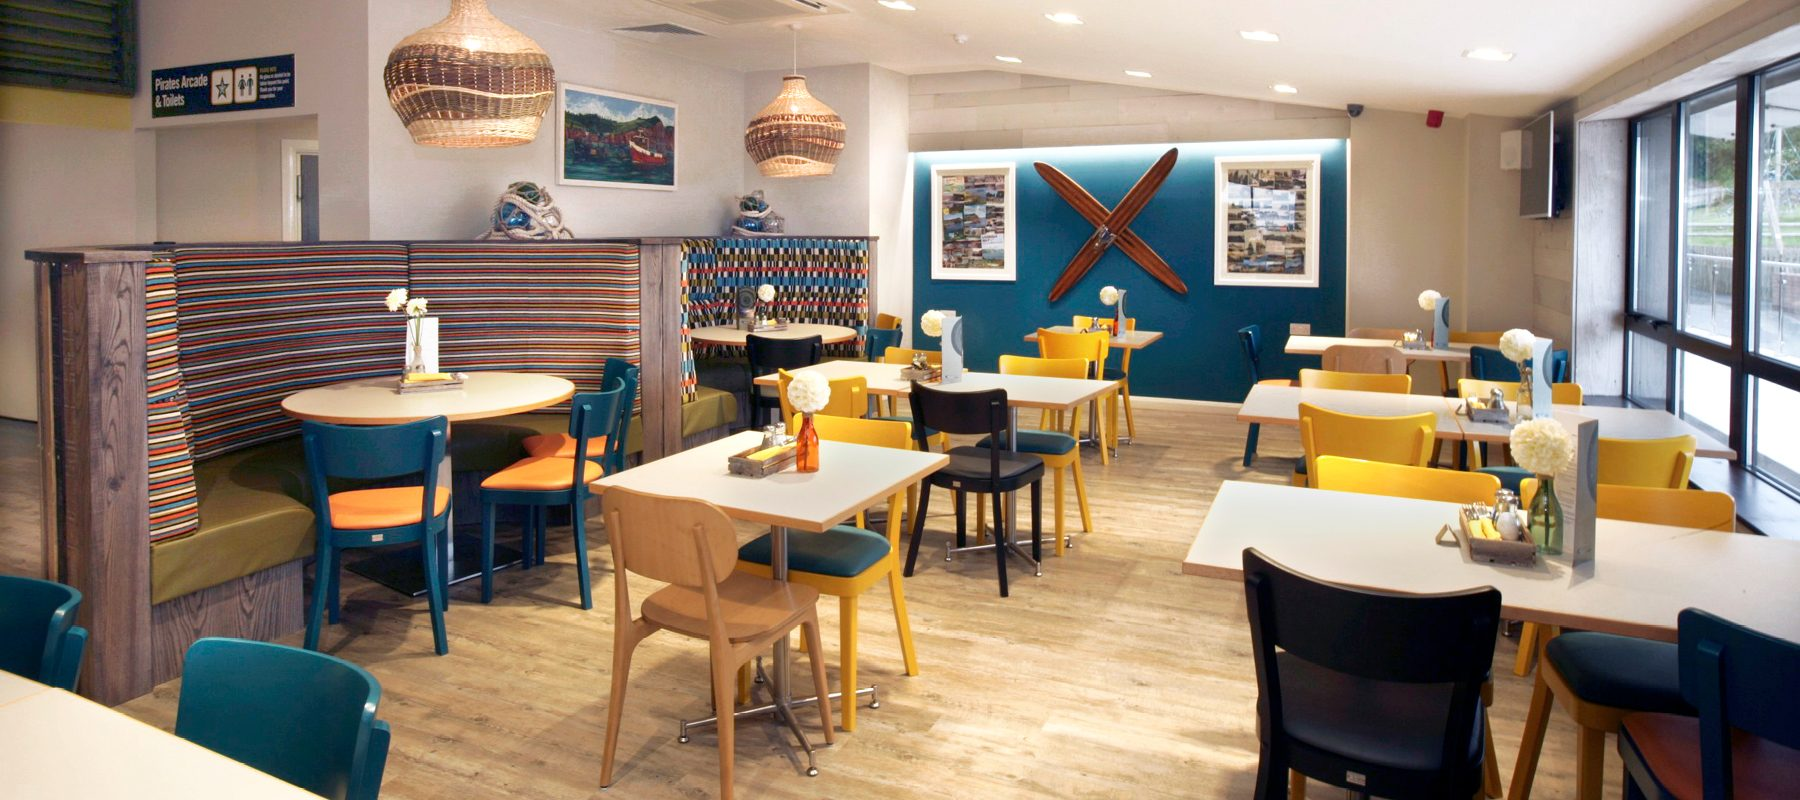 ladram bay holiday park fruition leisure interior and